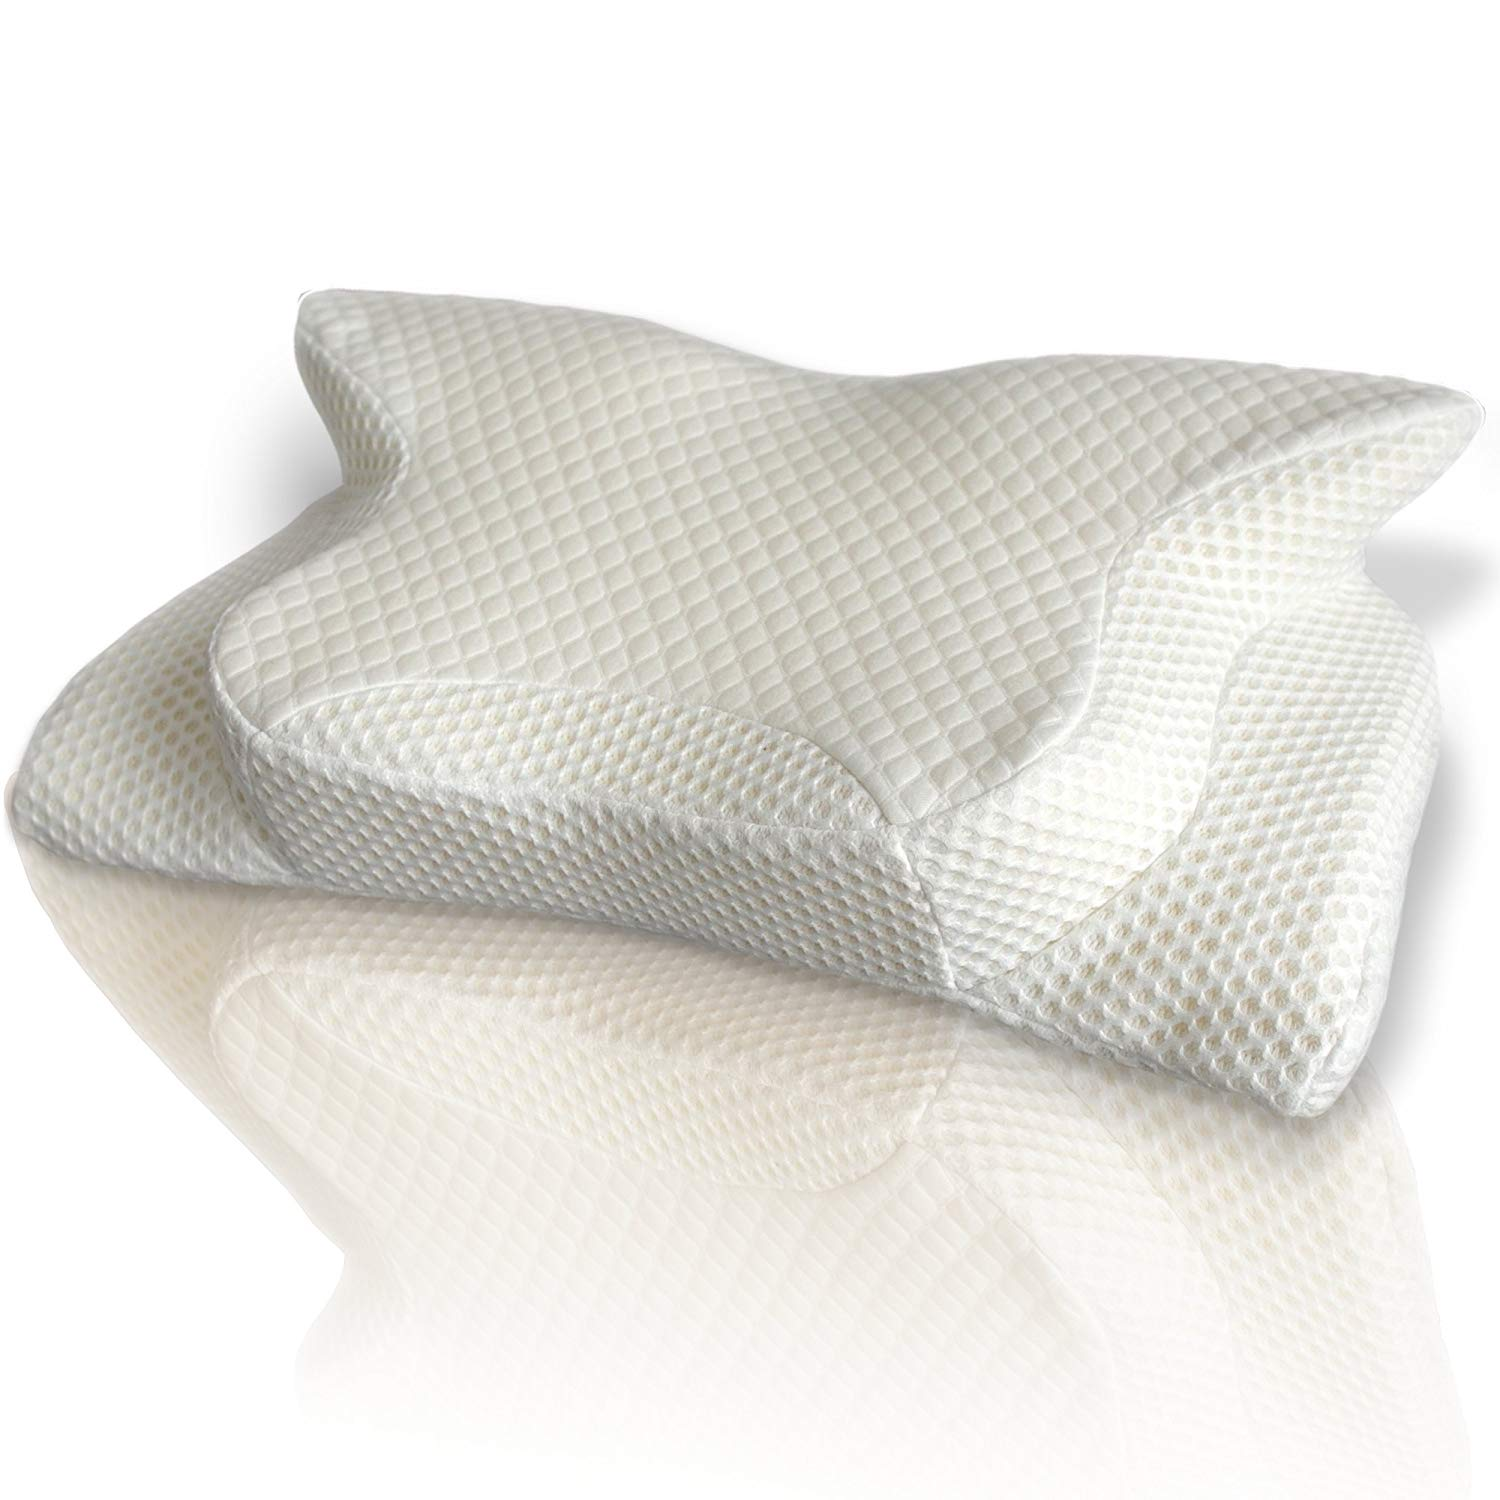 SmartDelux Orthopedic Cervical Support Pillow Review by www.snoremagazine.com